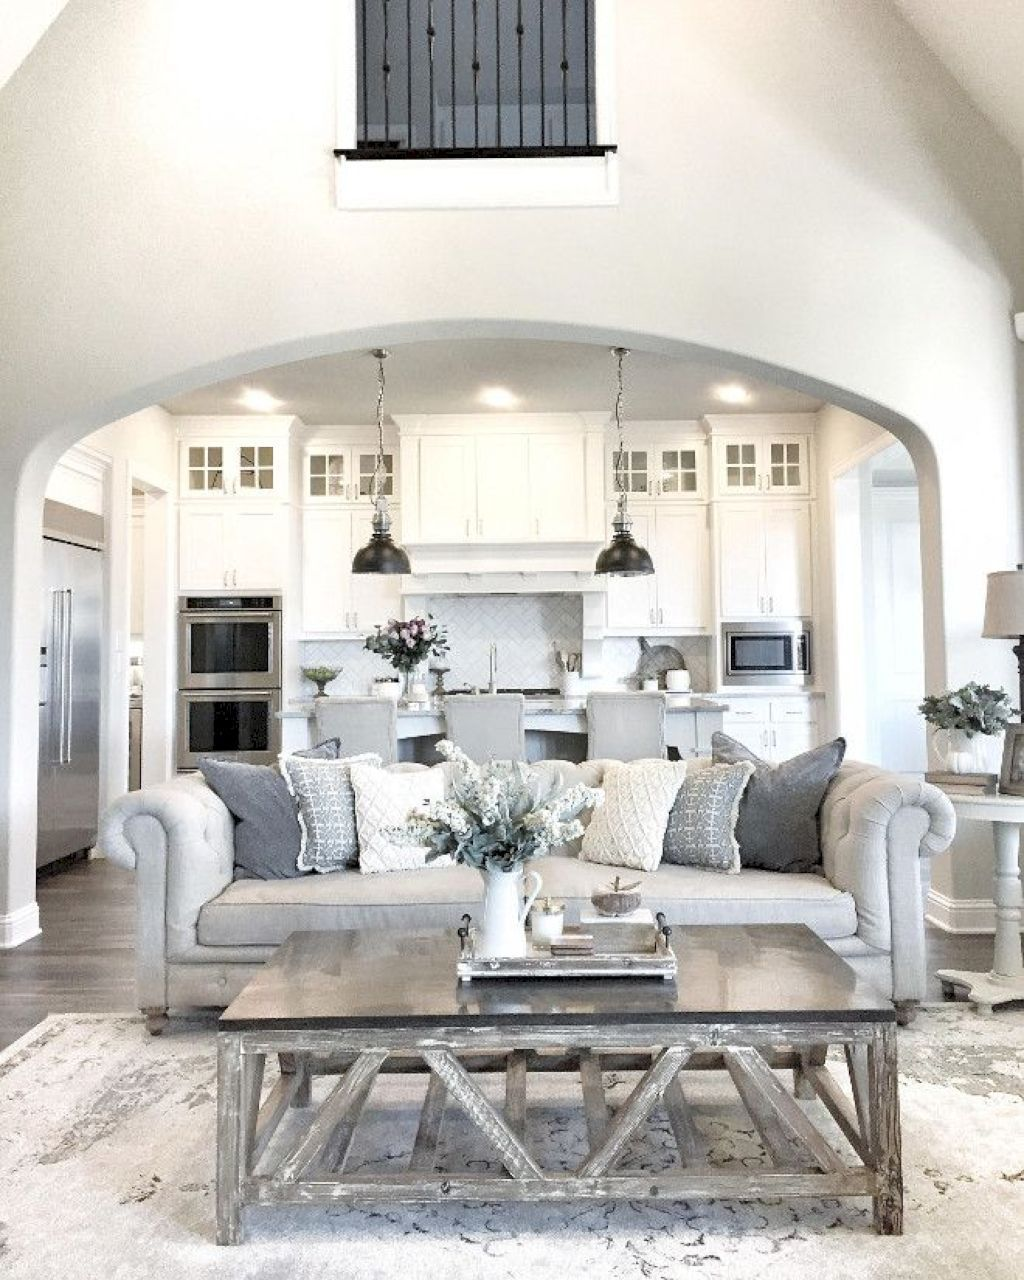 08 Cozy Farmhouse Living Room Decor Ideas In 2019 For The Home